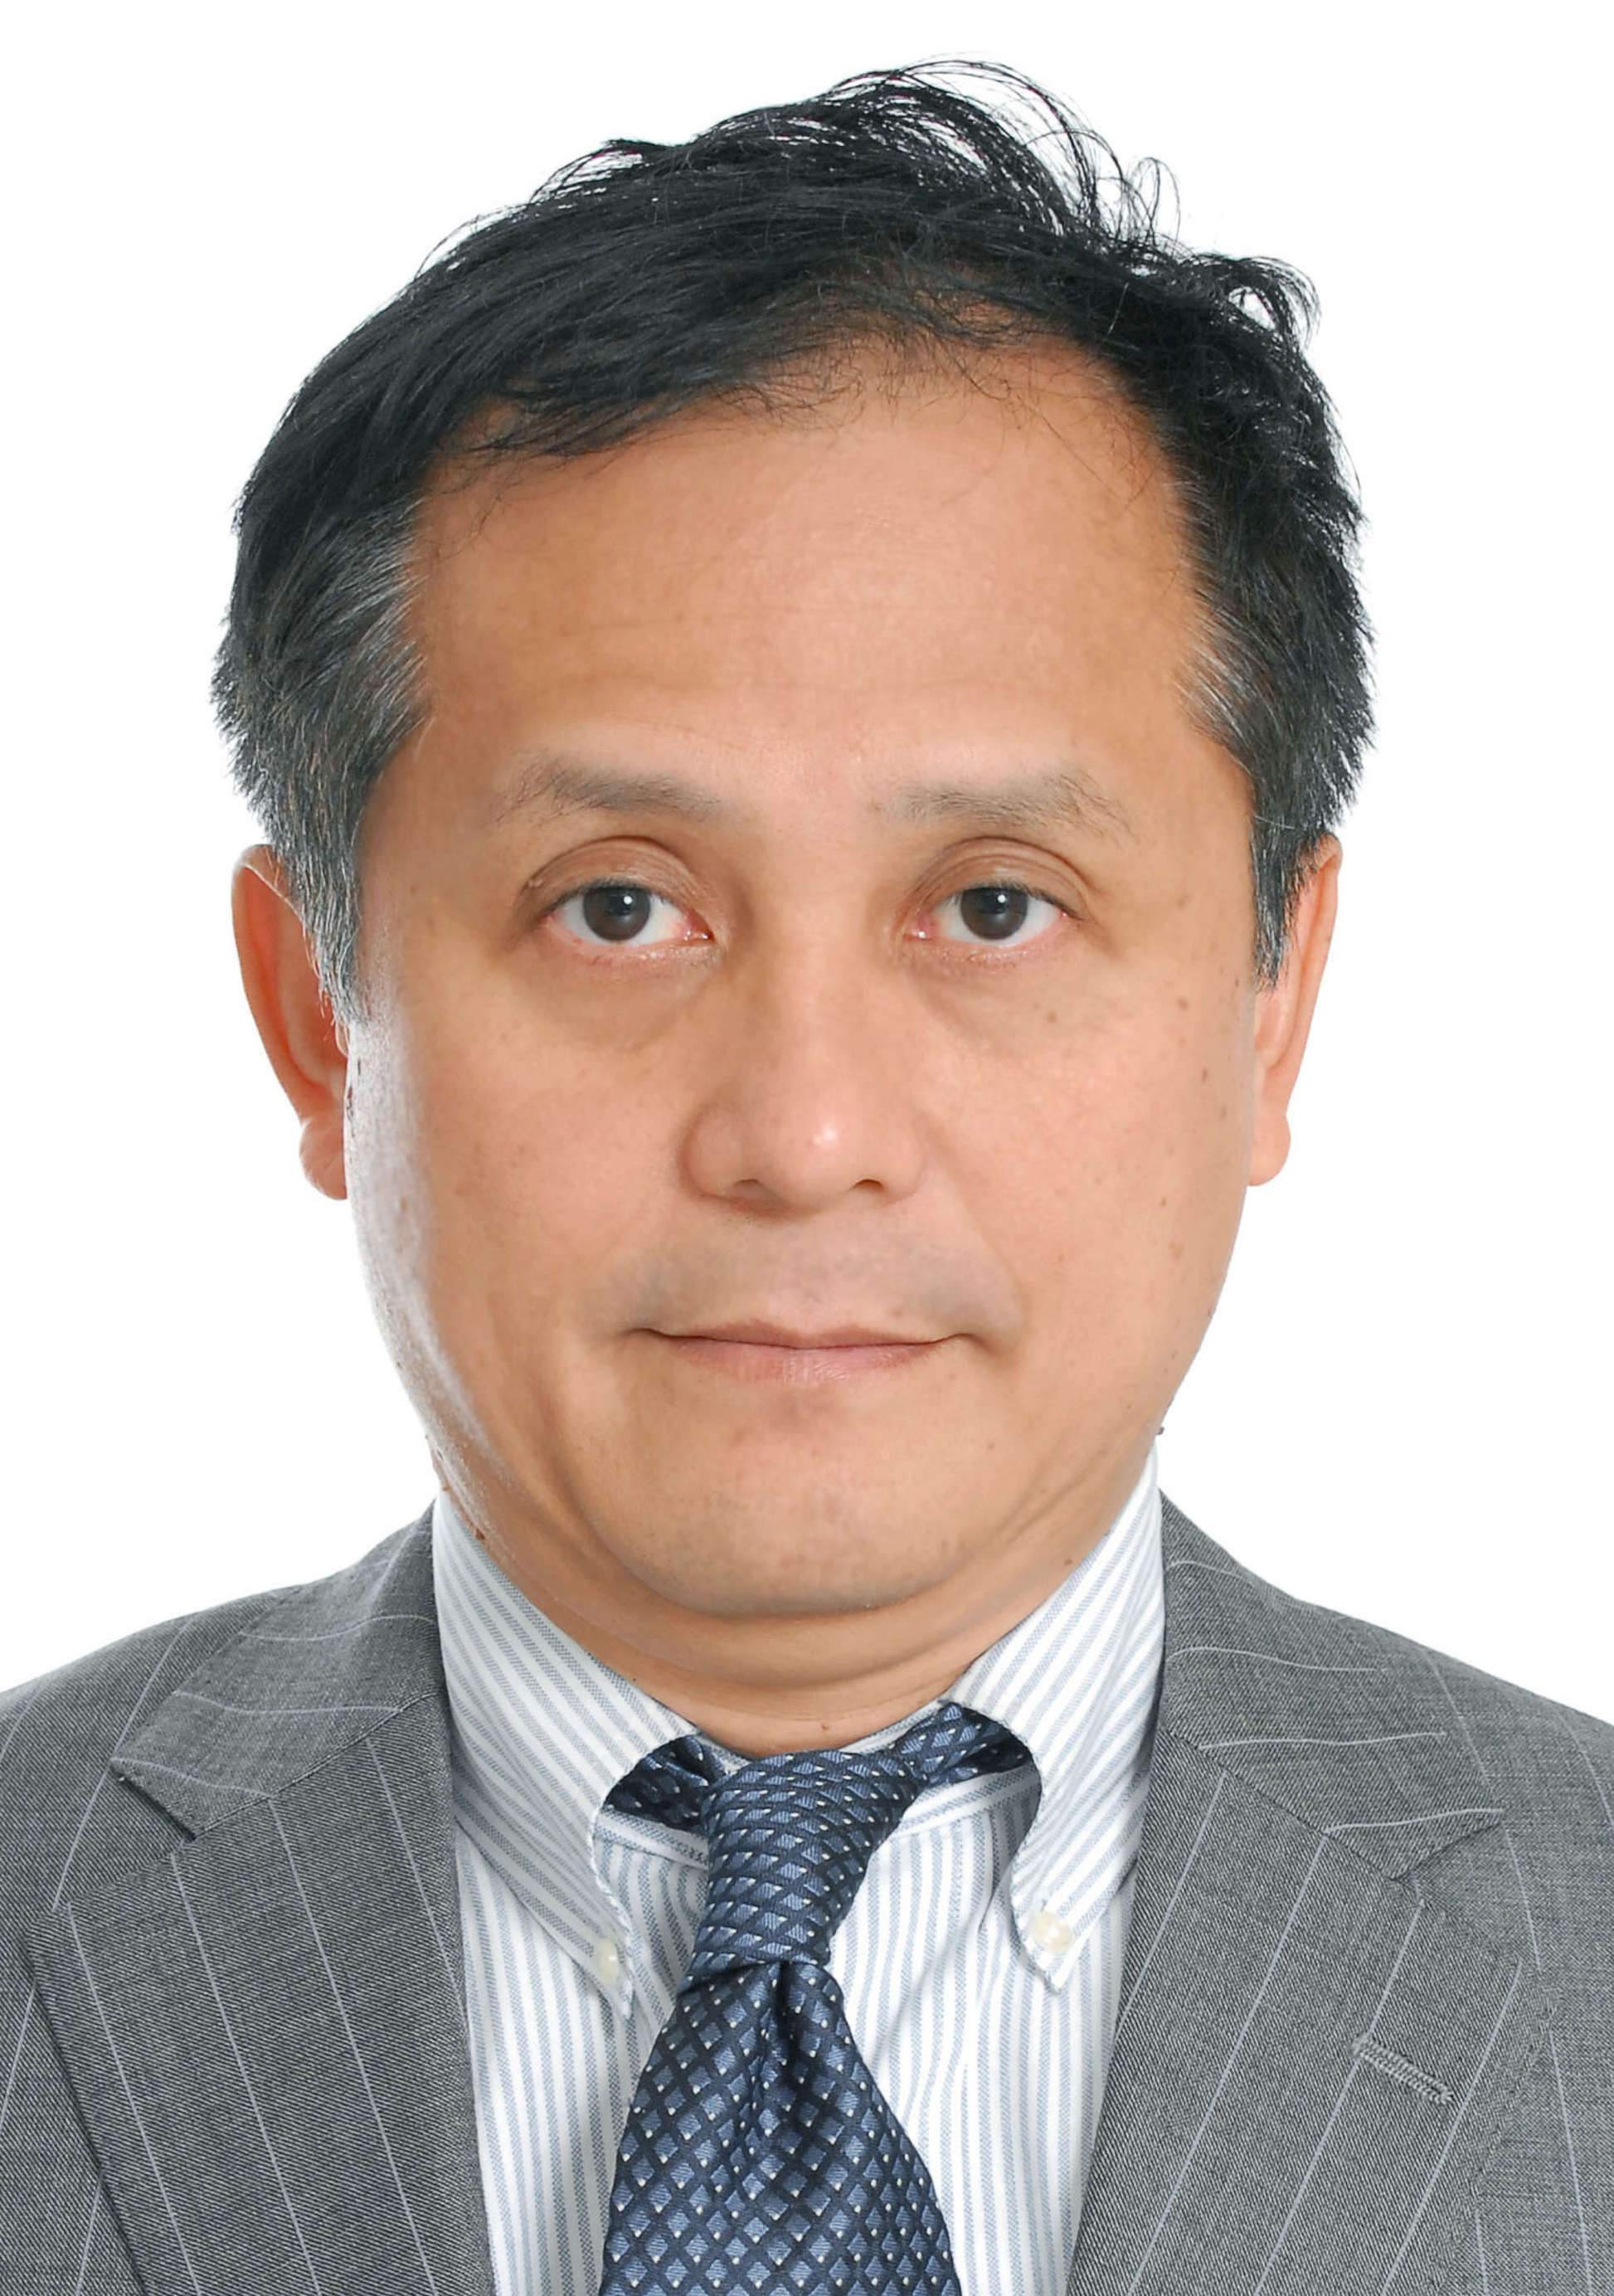 YAMAMOTO Kazumune, chief producer of News Division at Yomiuri Telecasting Corporation